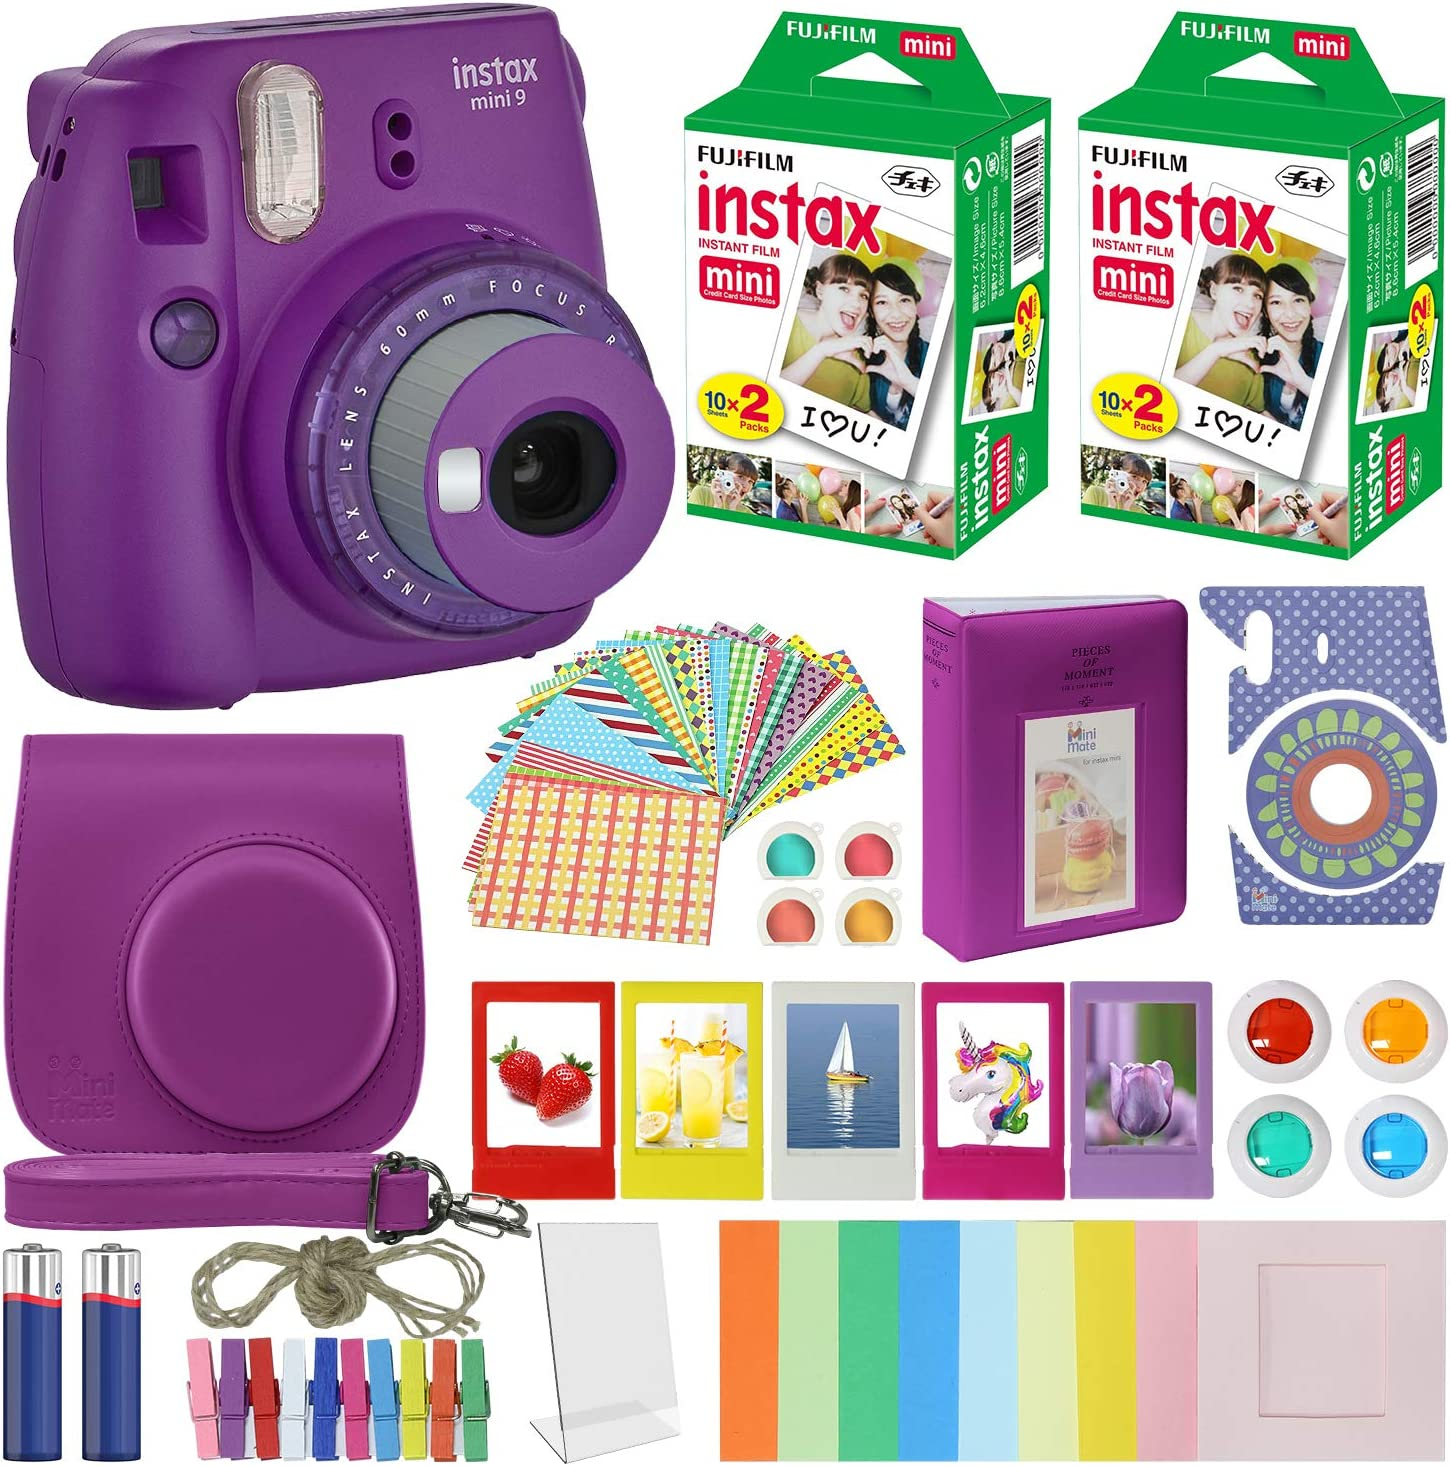 Fujifilm Instax Mini 9 - Instant Camera Clear Purple with Clear Accents with Carrying Case + Fuji Instax Film Value Pack (40 Sheets) Accessories Bundle, Color Filters, Photo Album, Assorted Fra